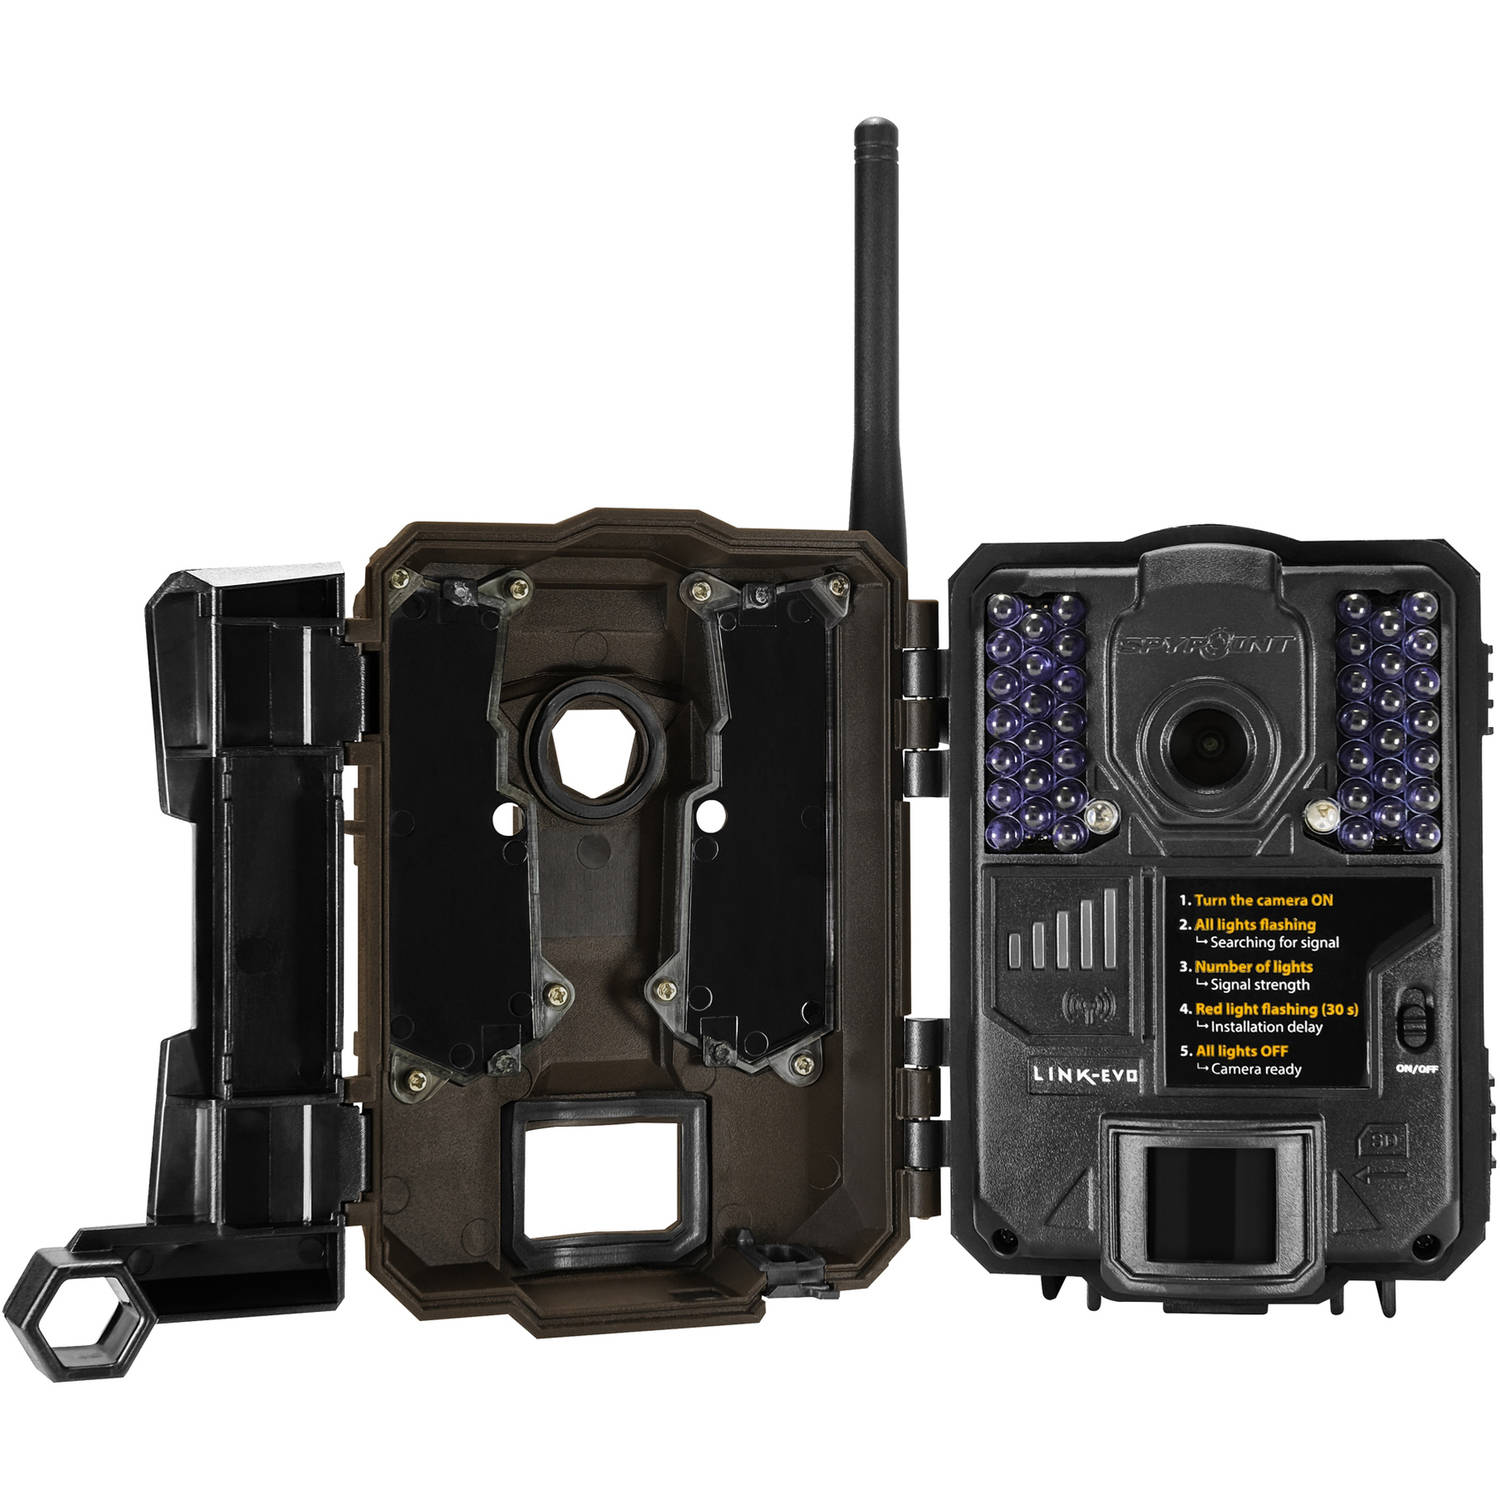 online store 5a904 5d768 Spypoint 4G Cellular AT&T HD 12MP Low Glow IR Game Trail Camera ...